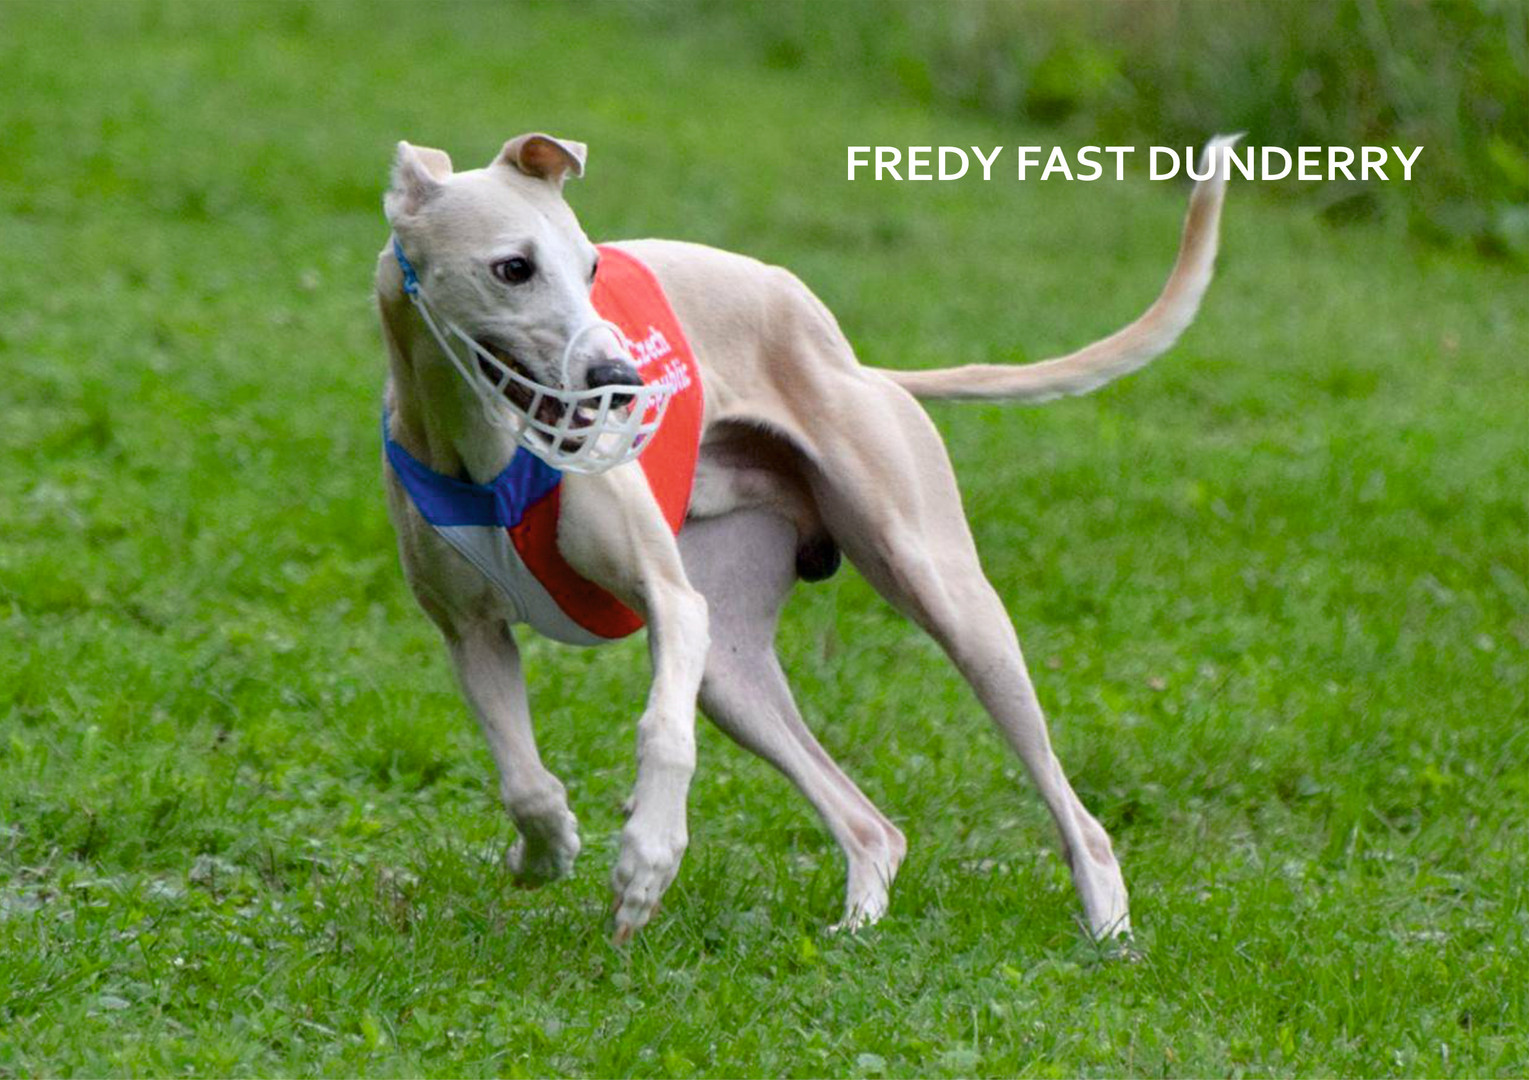 FREDY FAST DUNDERRY